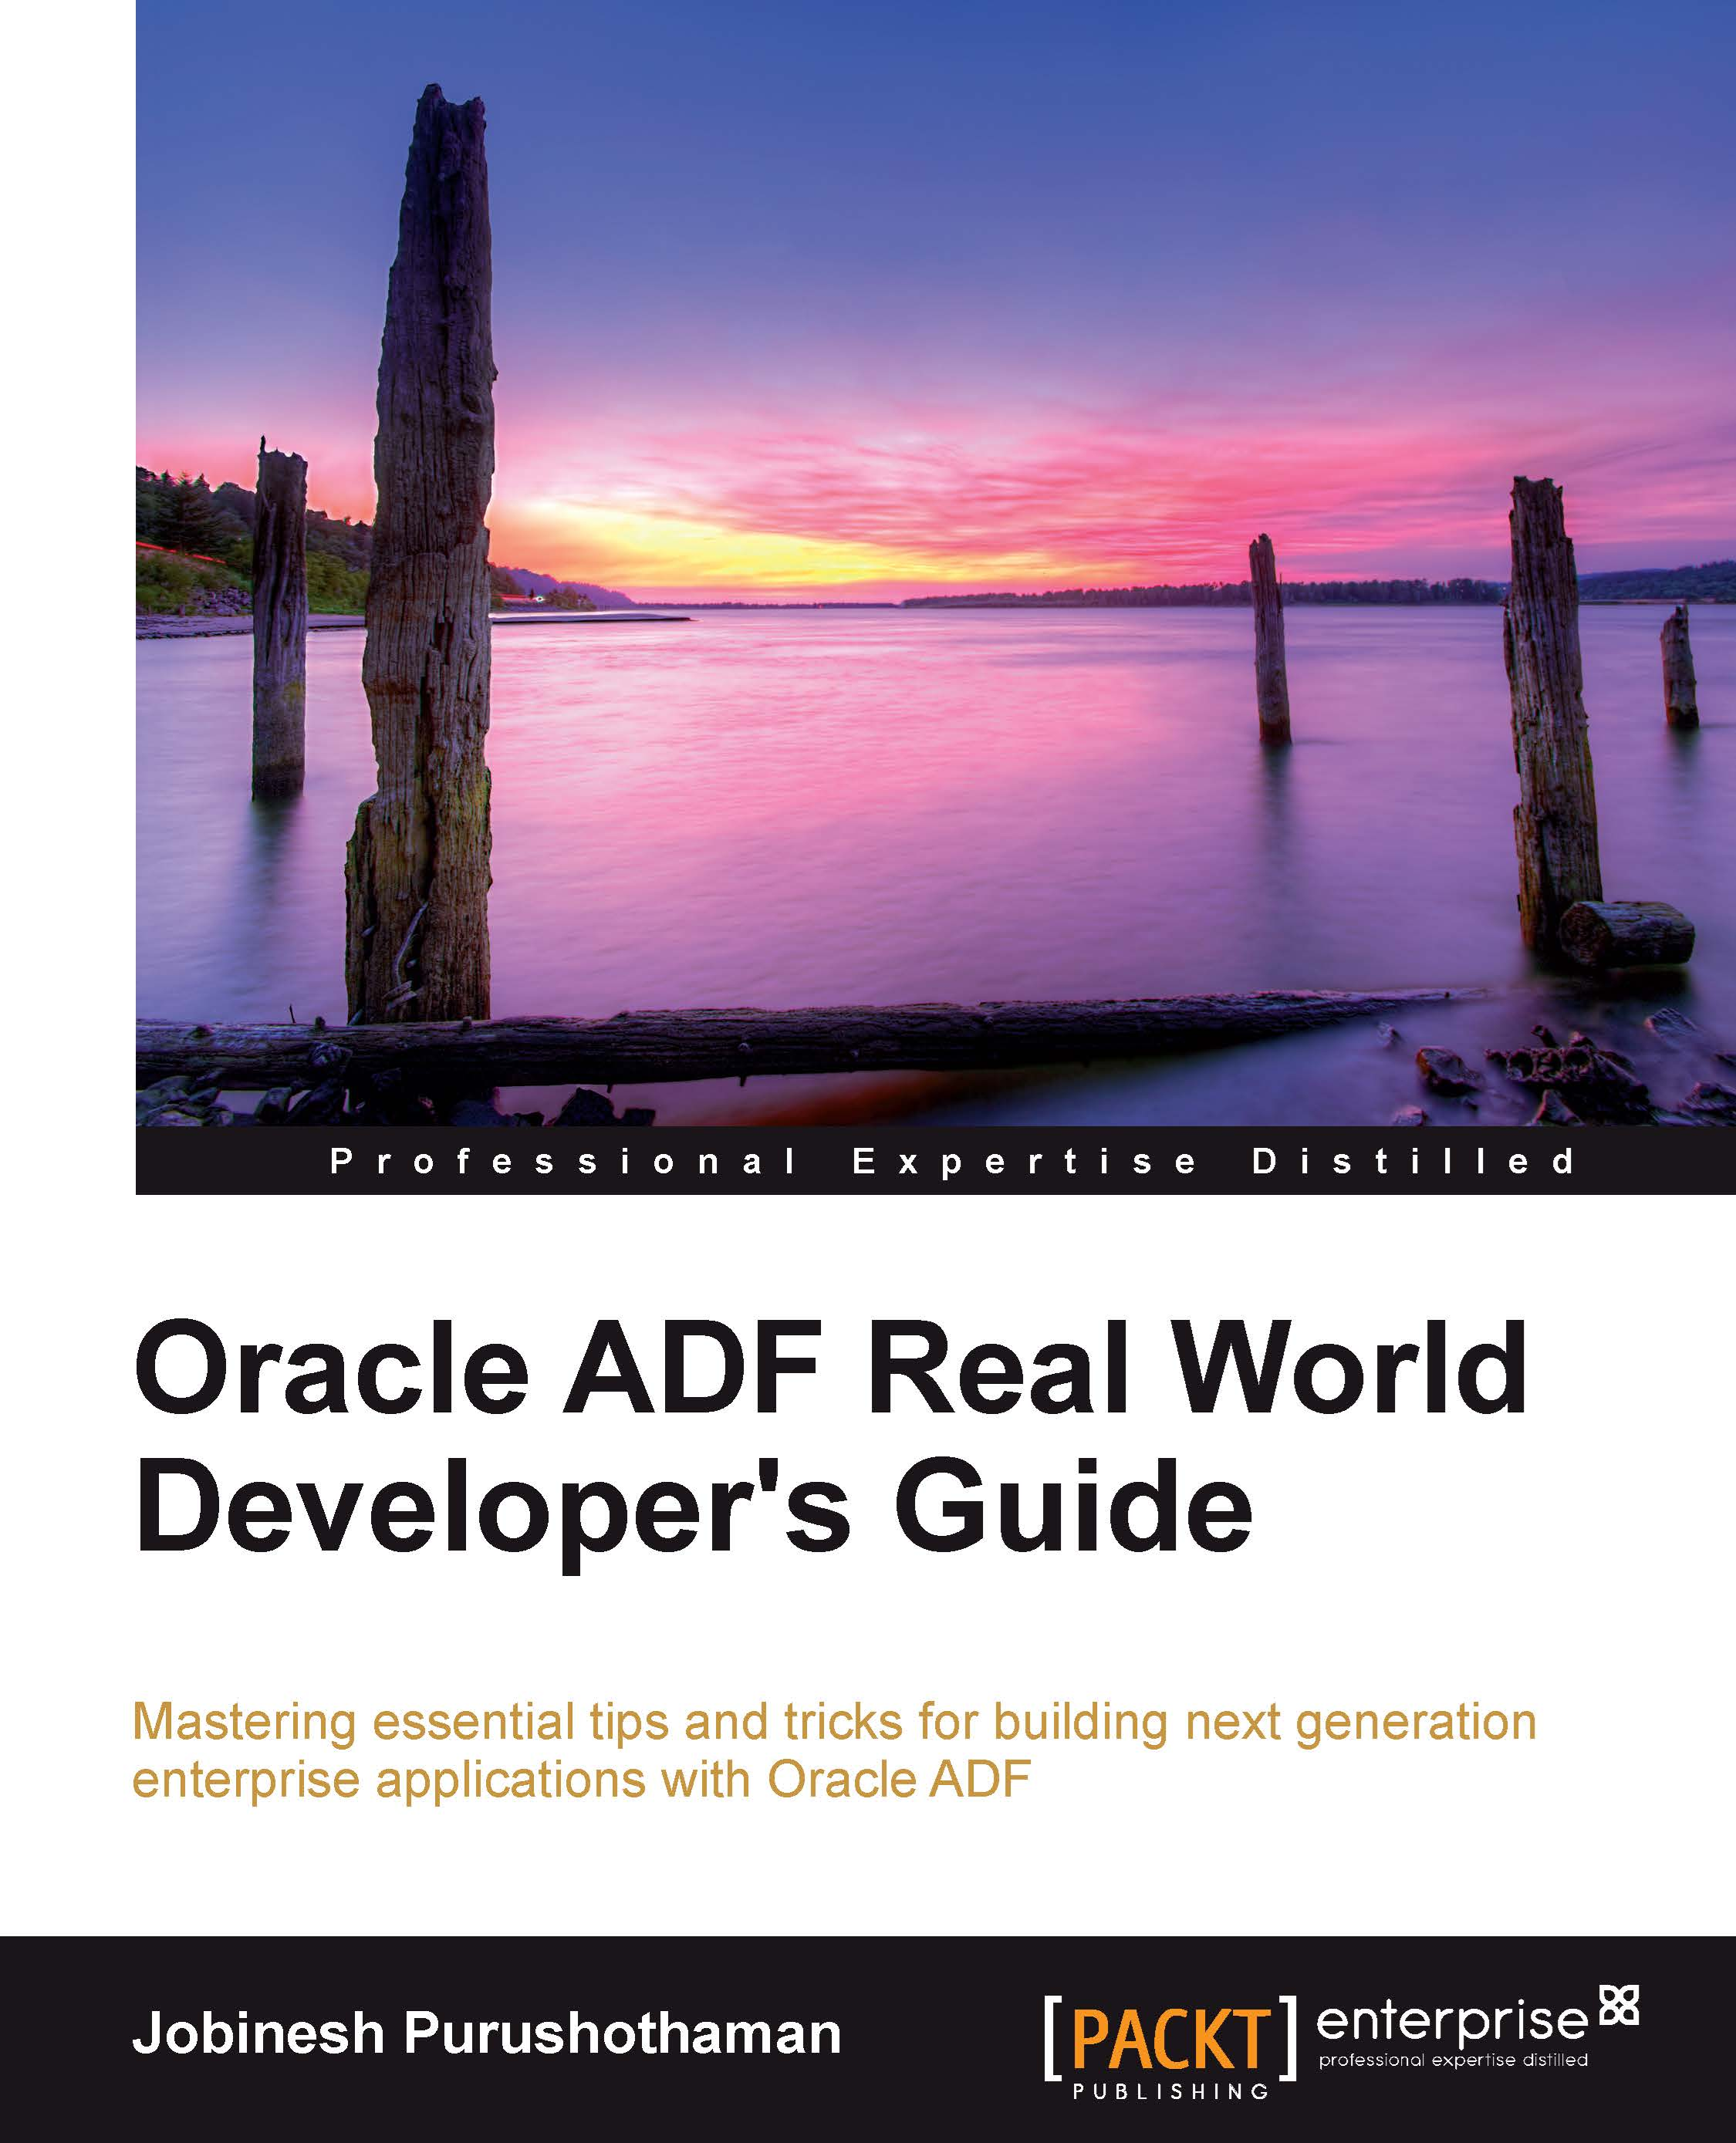 Book Review : Oracle ADF Real World Developer's Guide